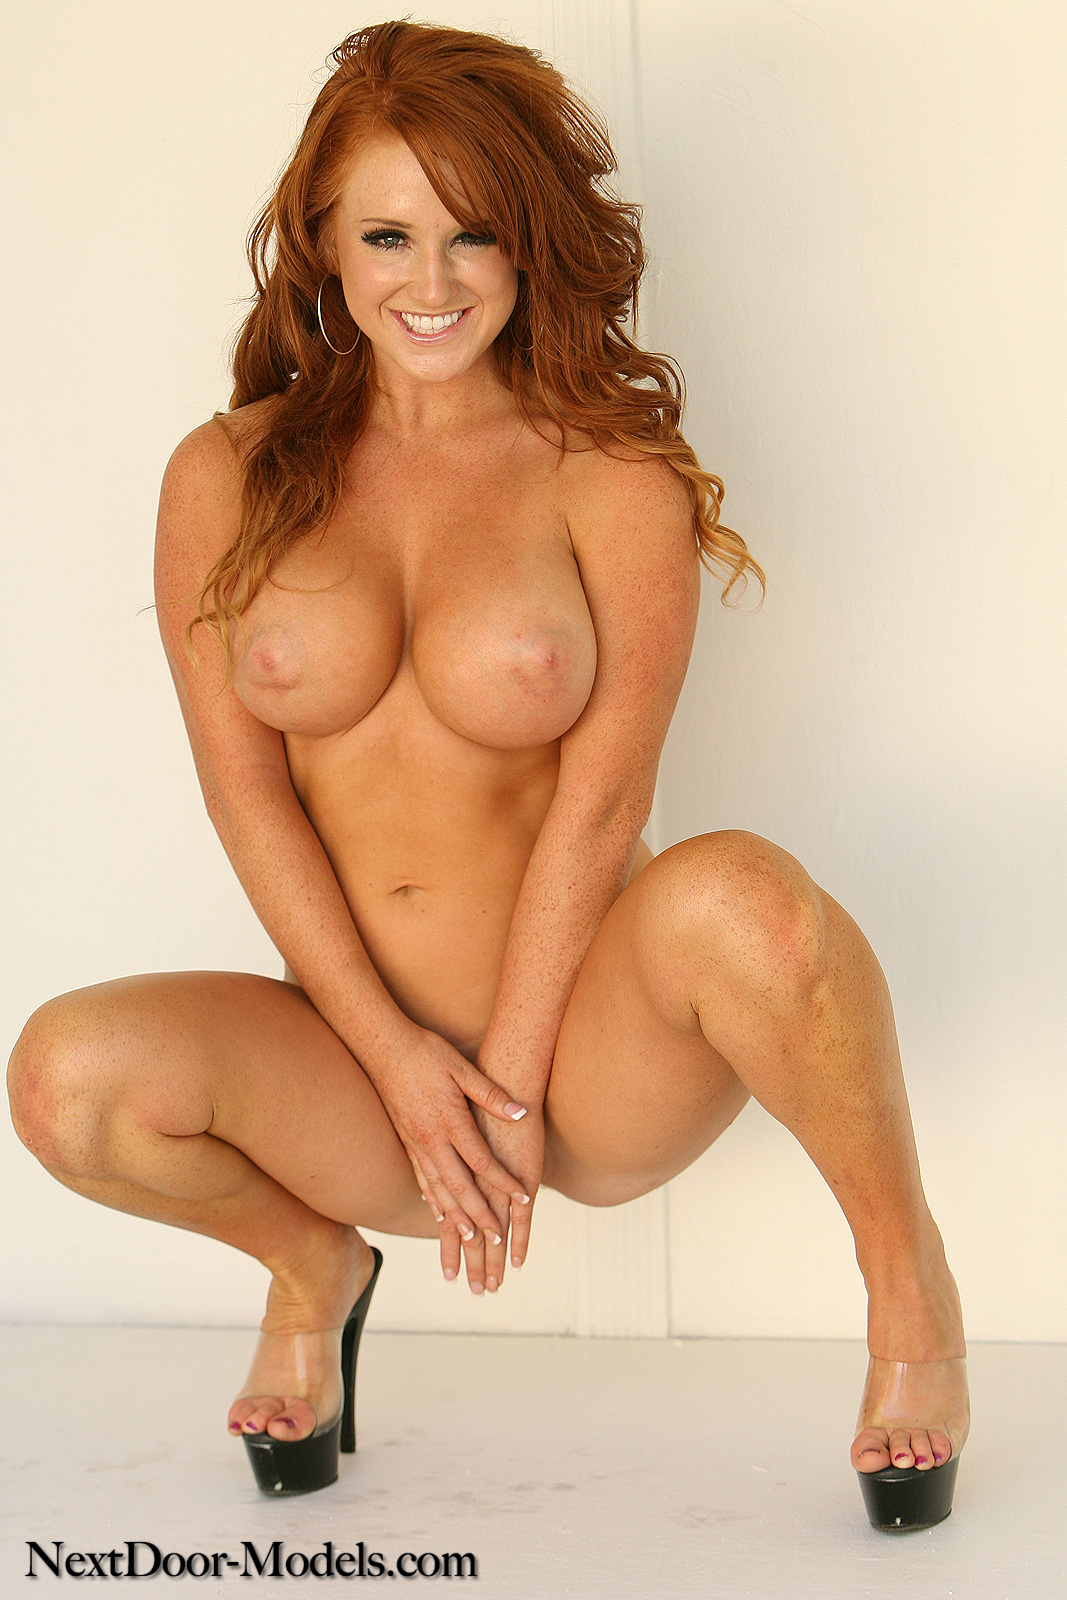 Shit... female nude redhead sexy want